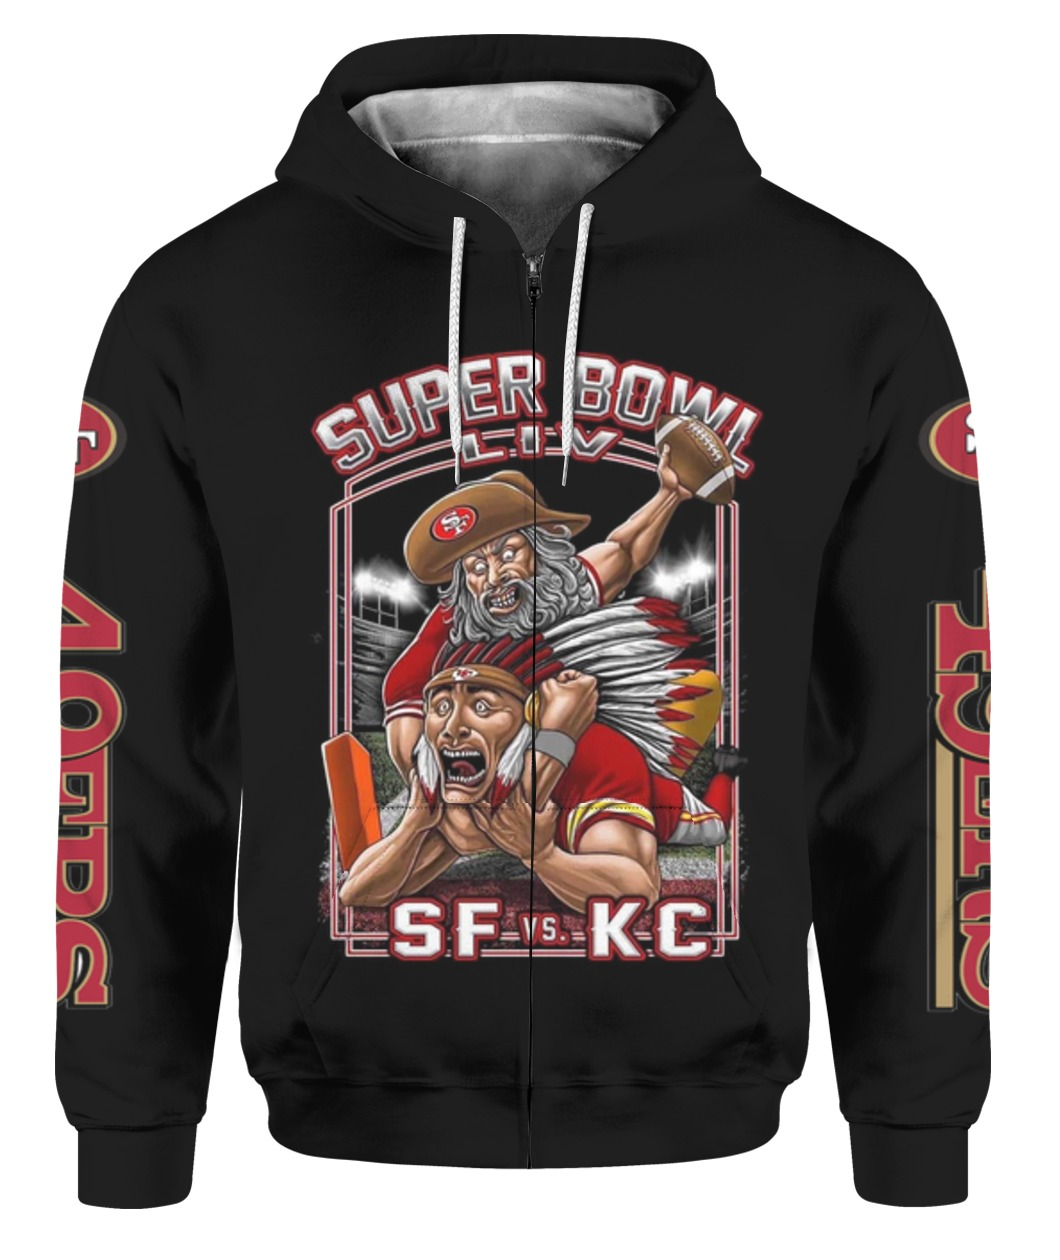 Super Bowl Liv Matchup Between The San Francisco 49ers And Kansas City Chiefs Full Size Up To 5xl